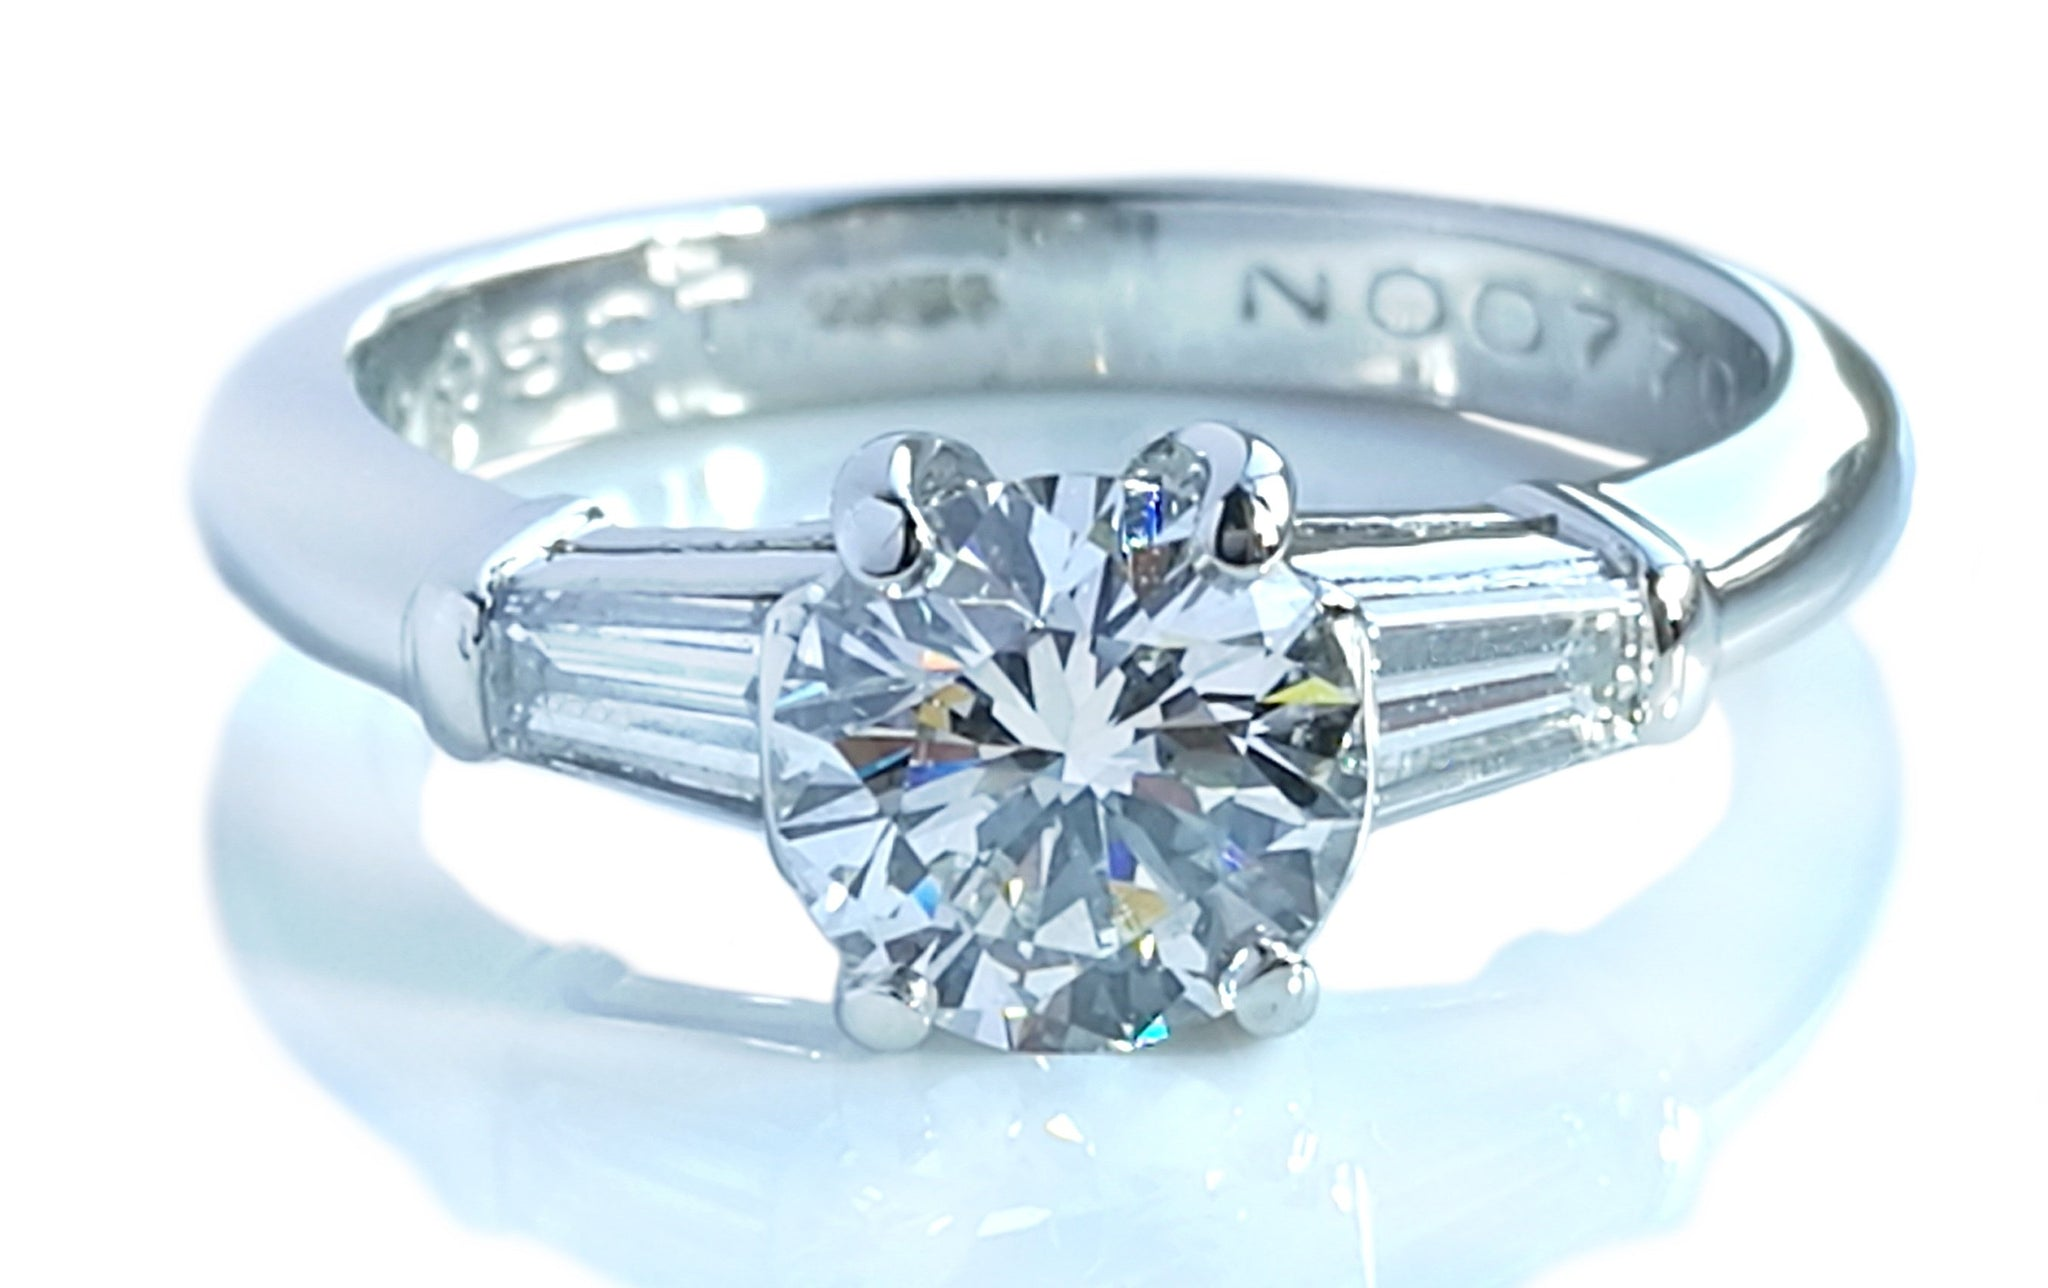 Tiffany & Co. 1.17ct G/VS1 3 Stone Diamond Engagement Ring with Baguette Side Stones